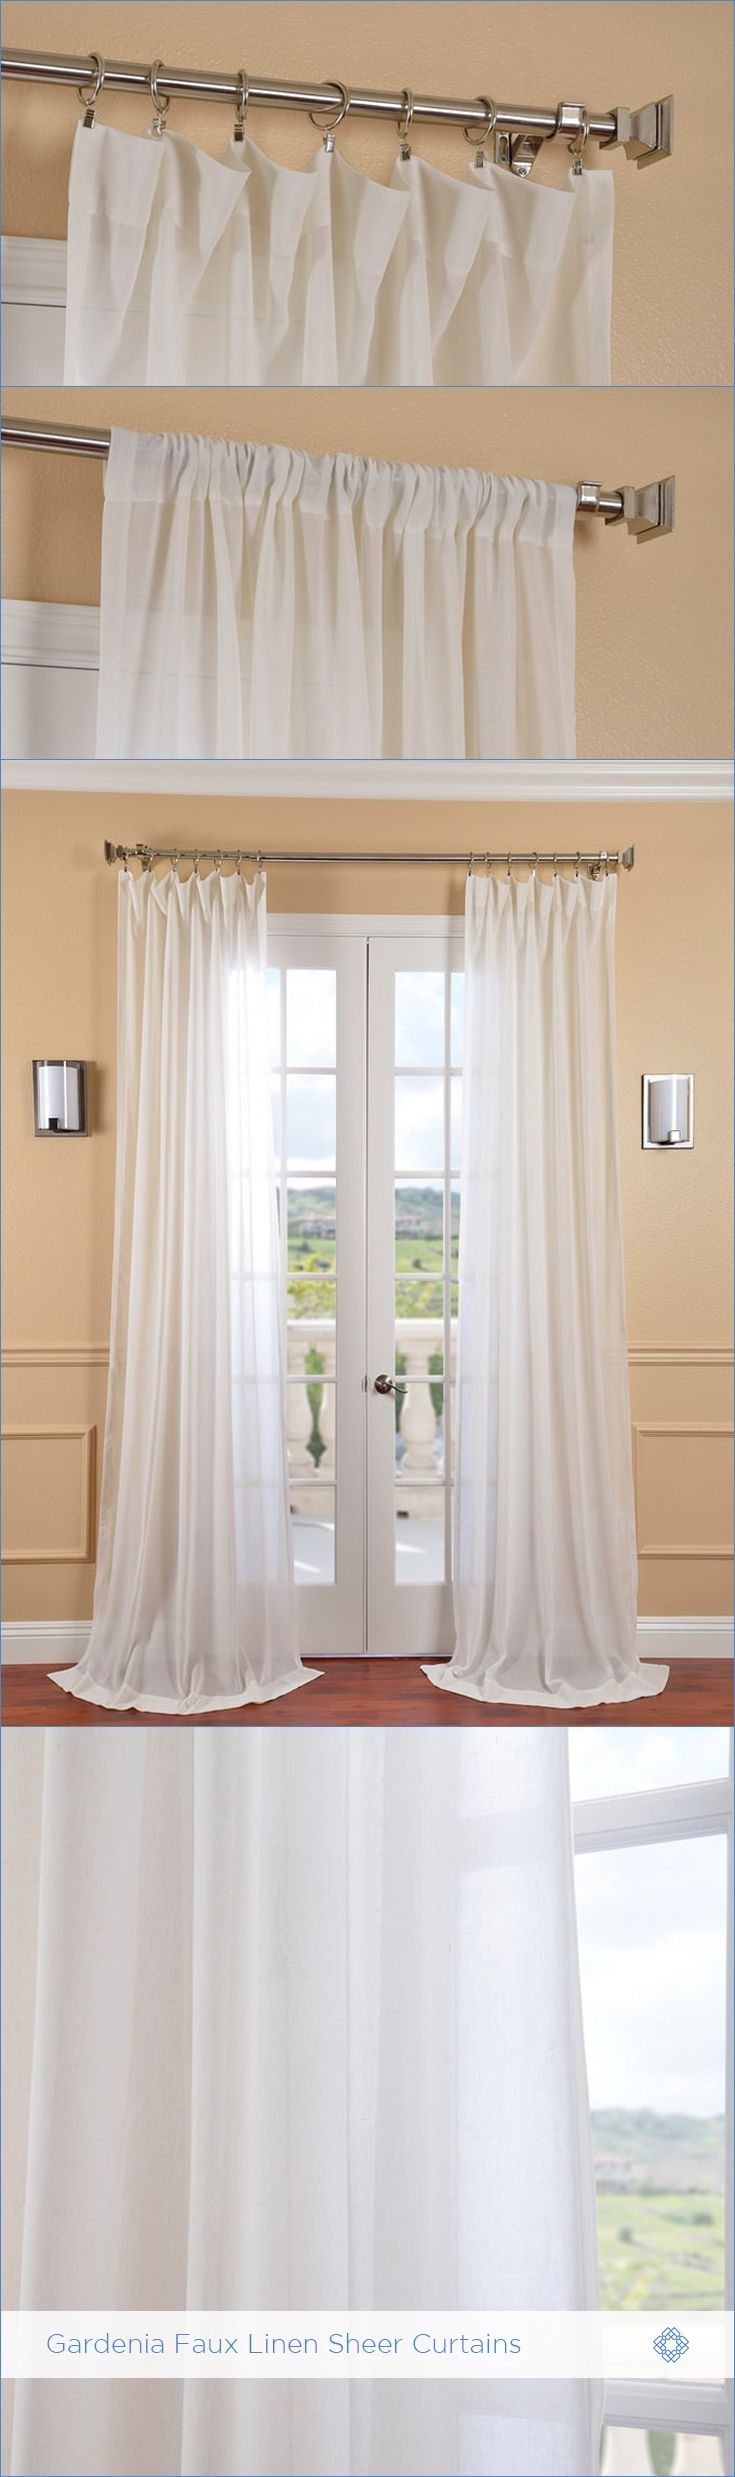 Linen window treatments - Shop Now Sheer Curtain Panels Gardenia Faux Linen Sheer Curtains Are Classic And Unmatched In